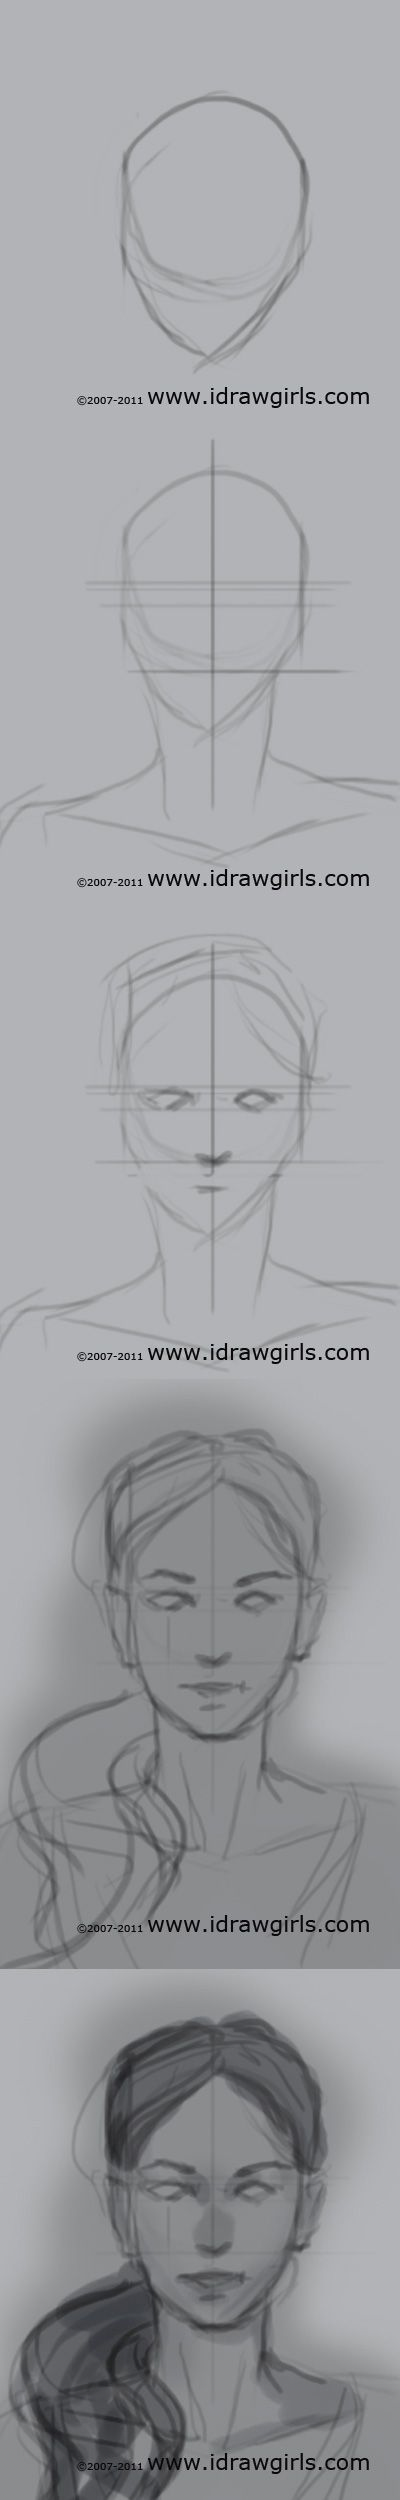 drawing portrait tutorial front view (1):. Stroke. Face. Anatomy.: